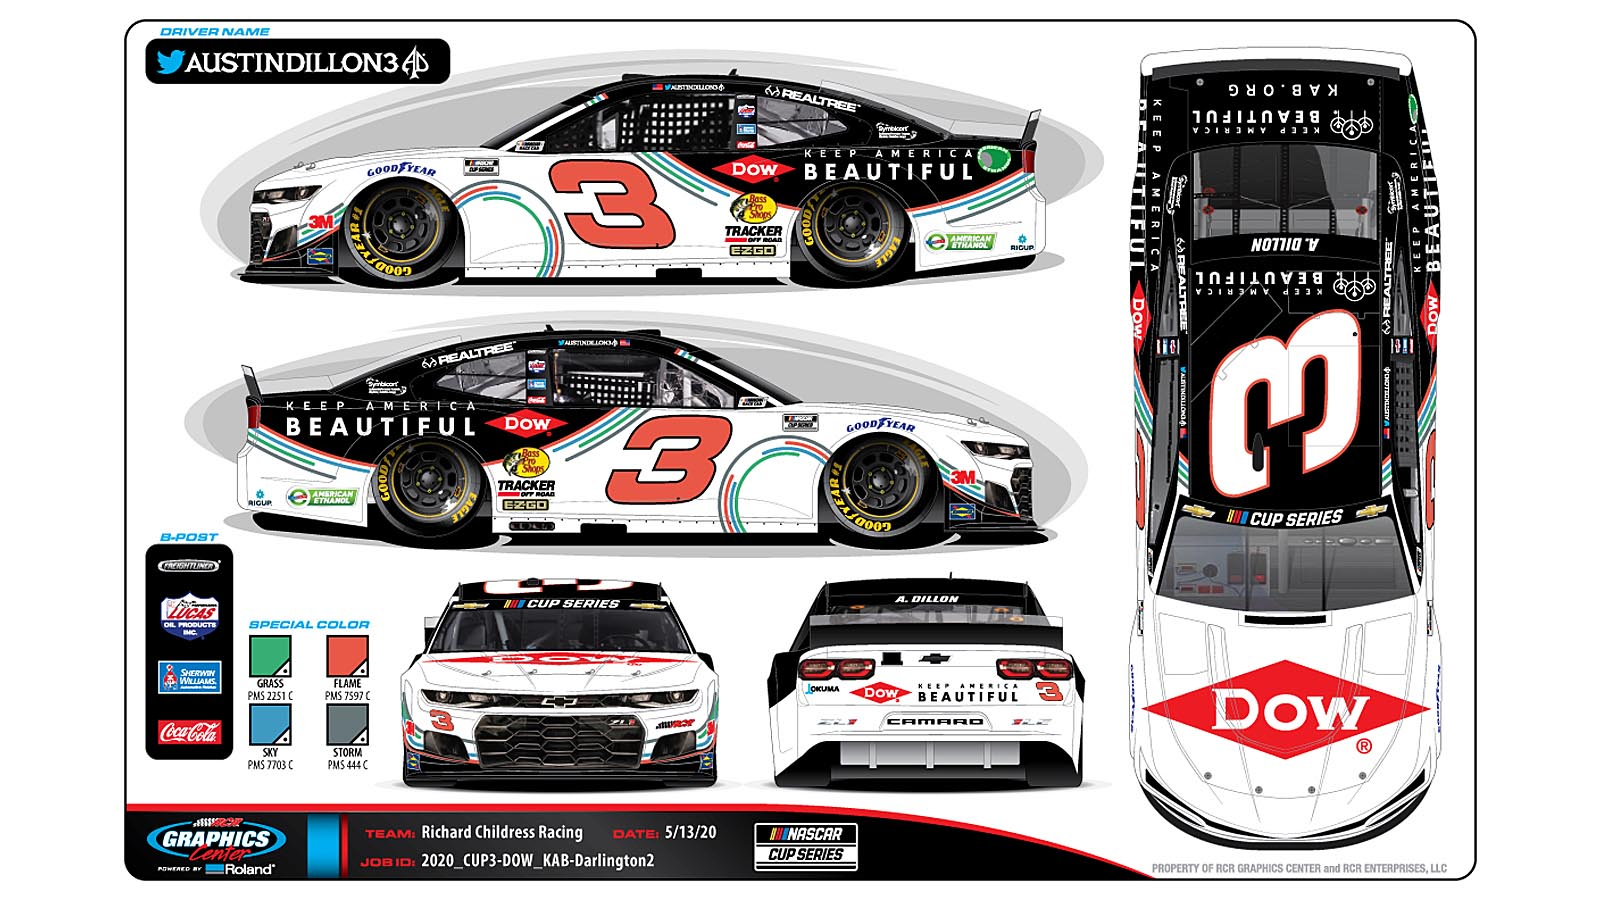 Daytona 500 Champion Austin Dillon Supports Keep America Beautiful